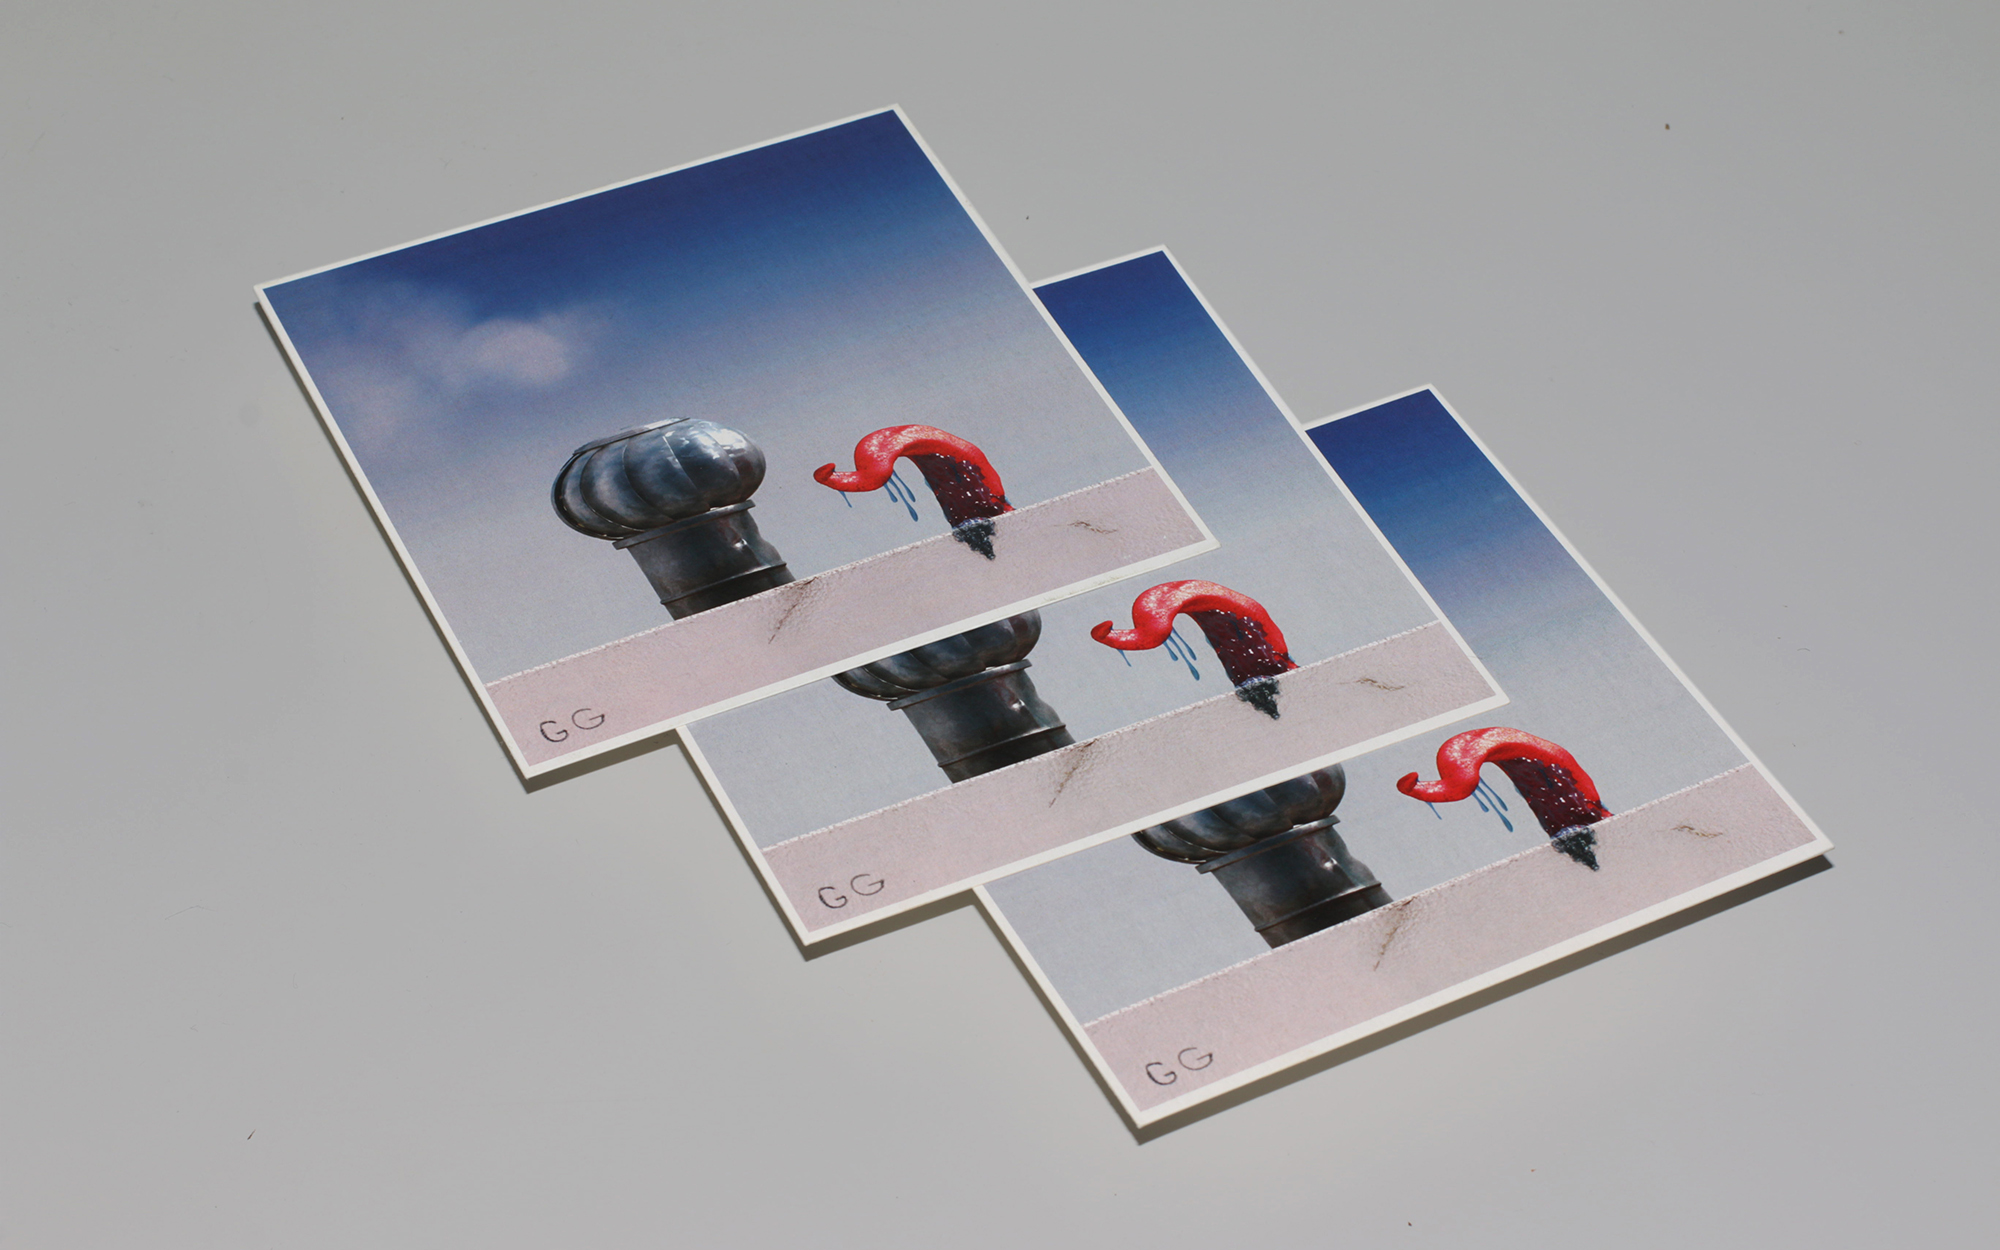 Organic ventilation postcard - 3 postcards